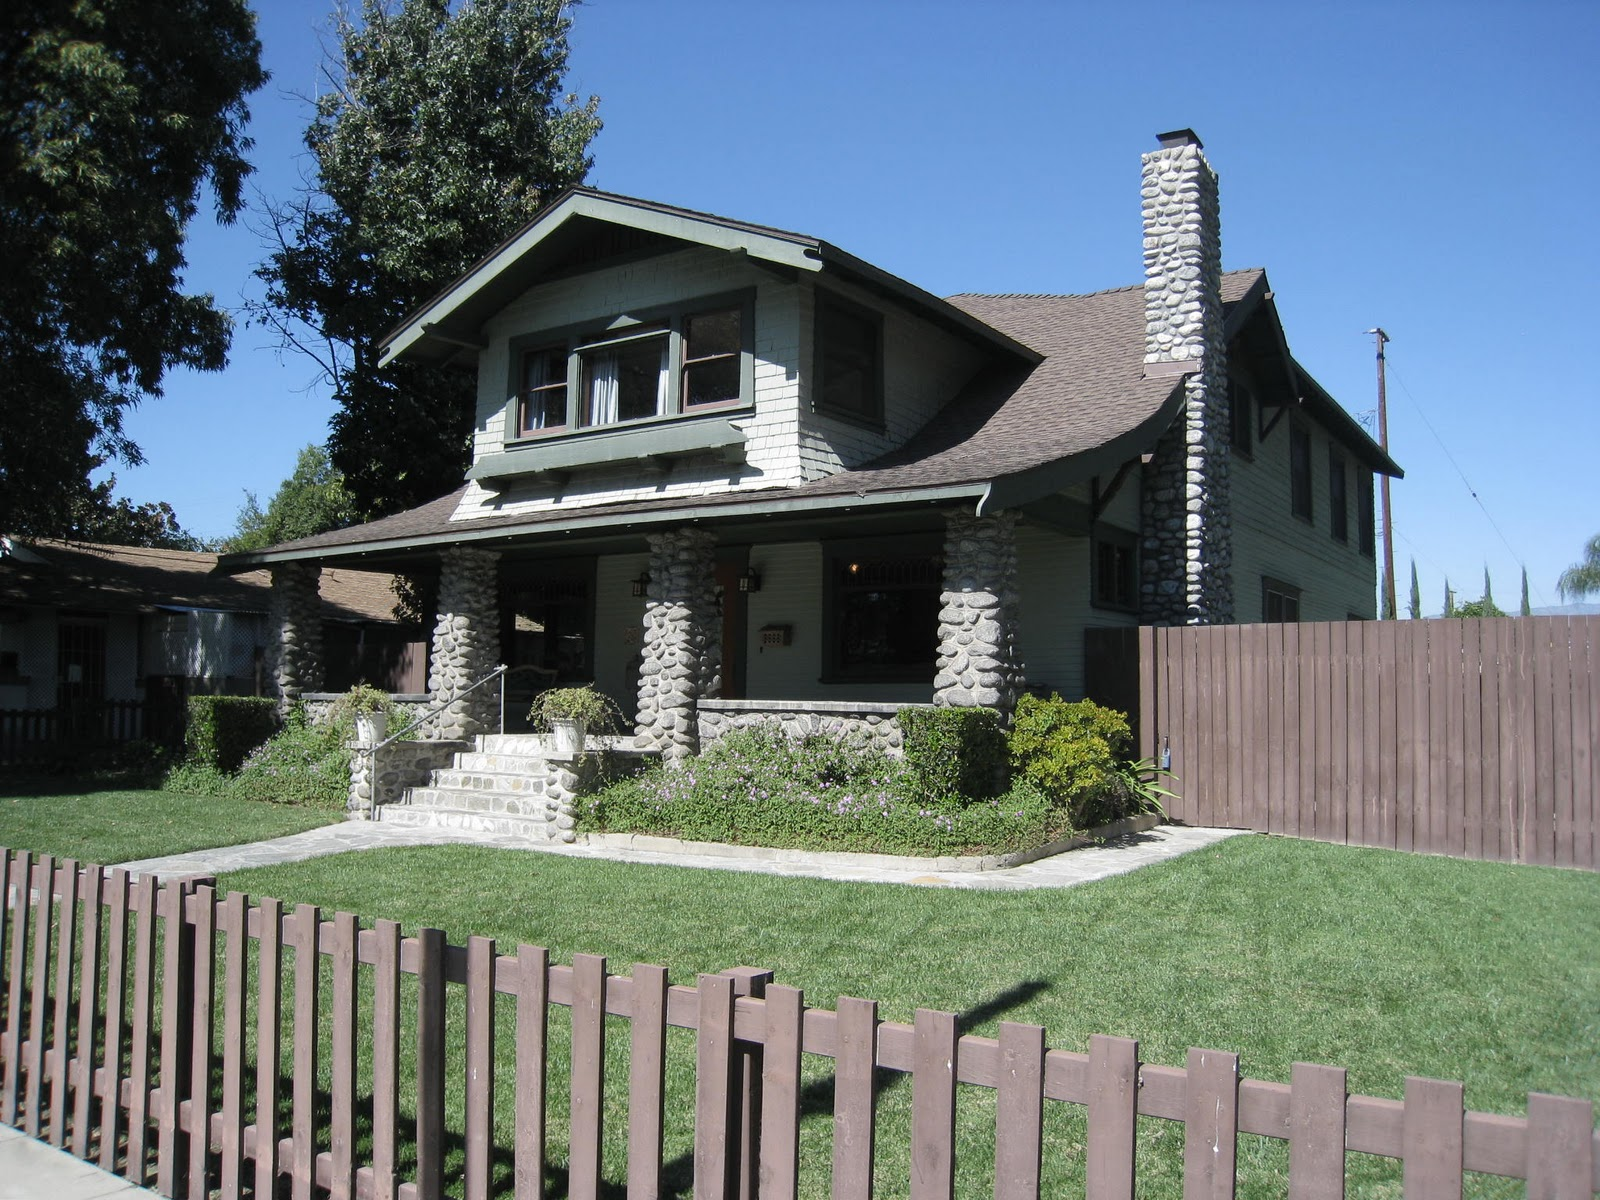 1910 House Plans Spanish Bungalow: California Craftsman Dream Home: Beautiful 1910 Craftsman